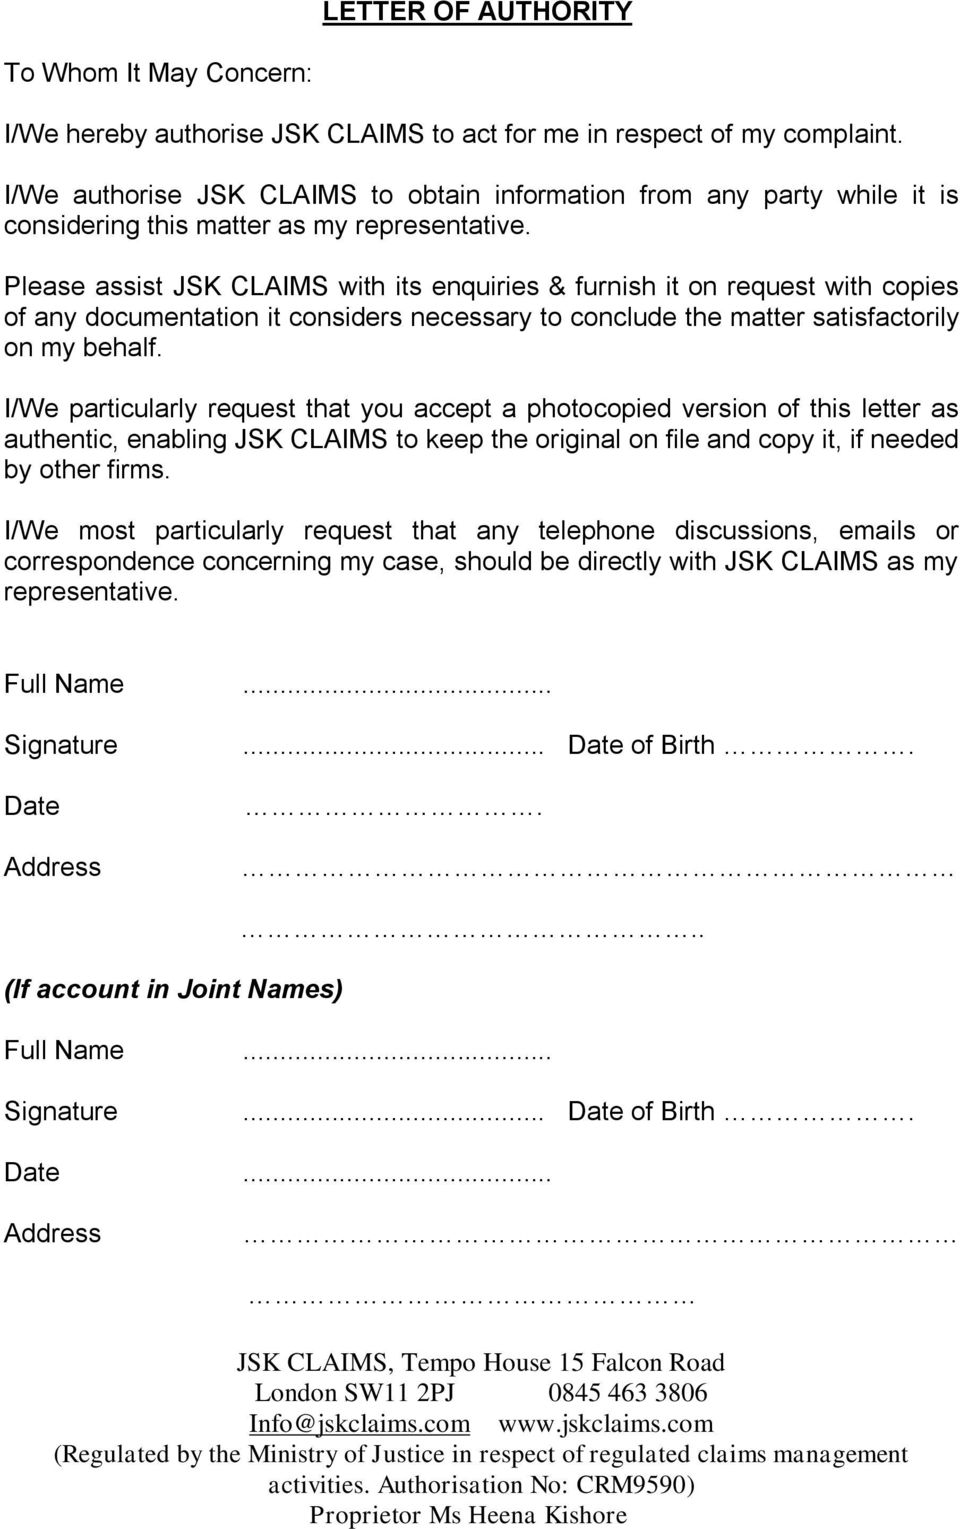 Please assist JSK CLAIMS with its enquiries & furnish it on request with copies of any documentation it considers necessary to conclude the matter satisfactorily on my behalf.